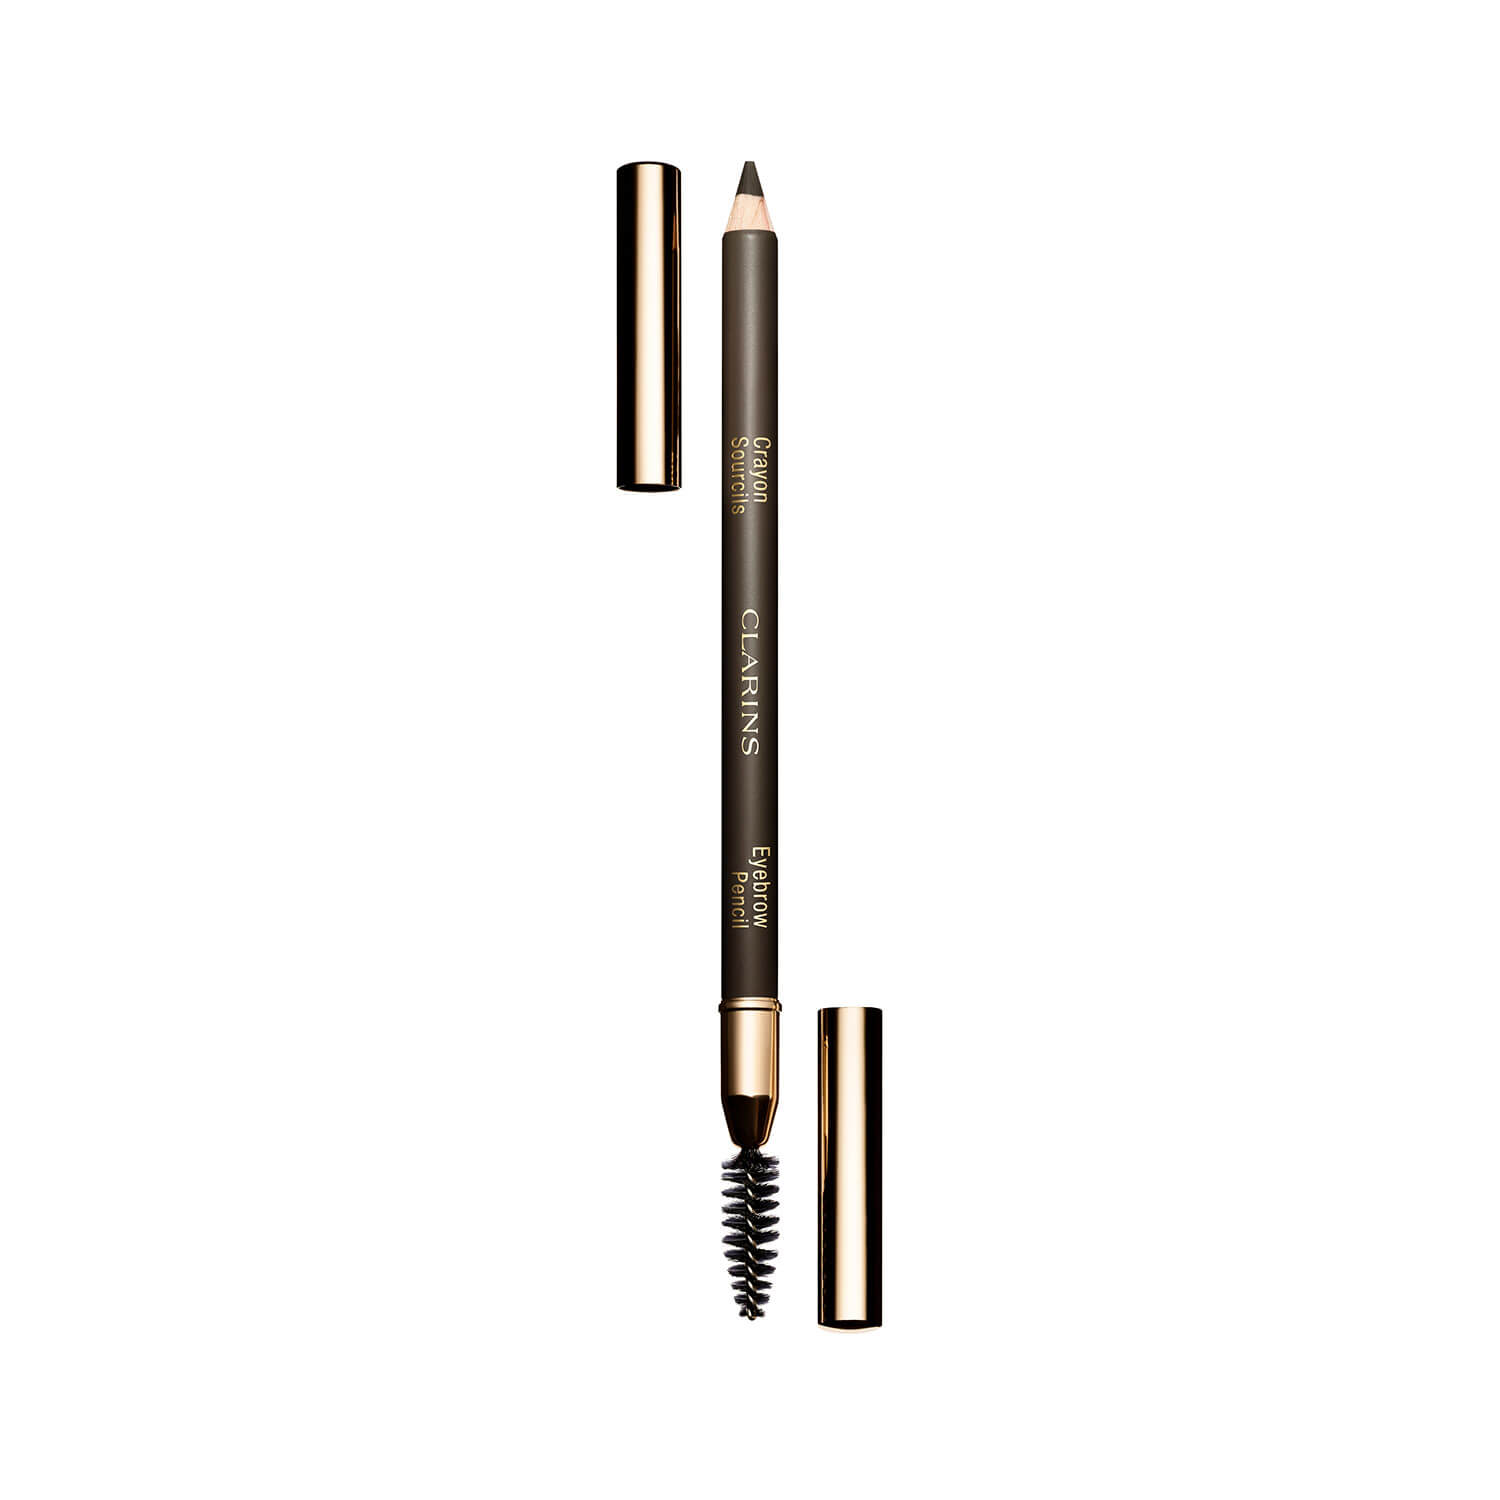 Clarins Sourcils - Crayon Dark Brown 01